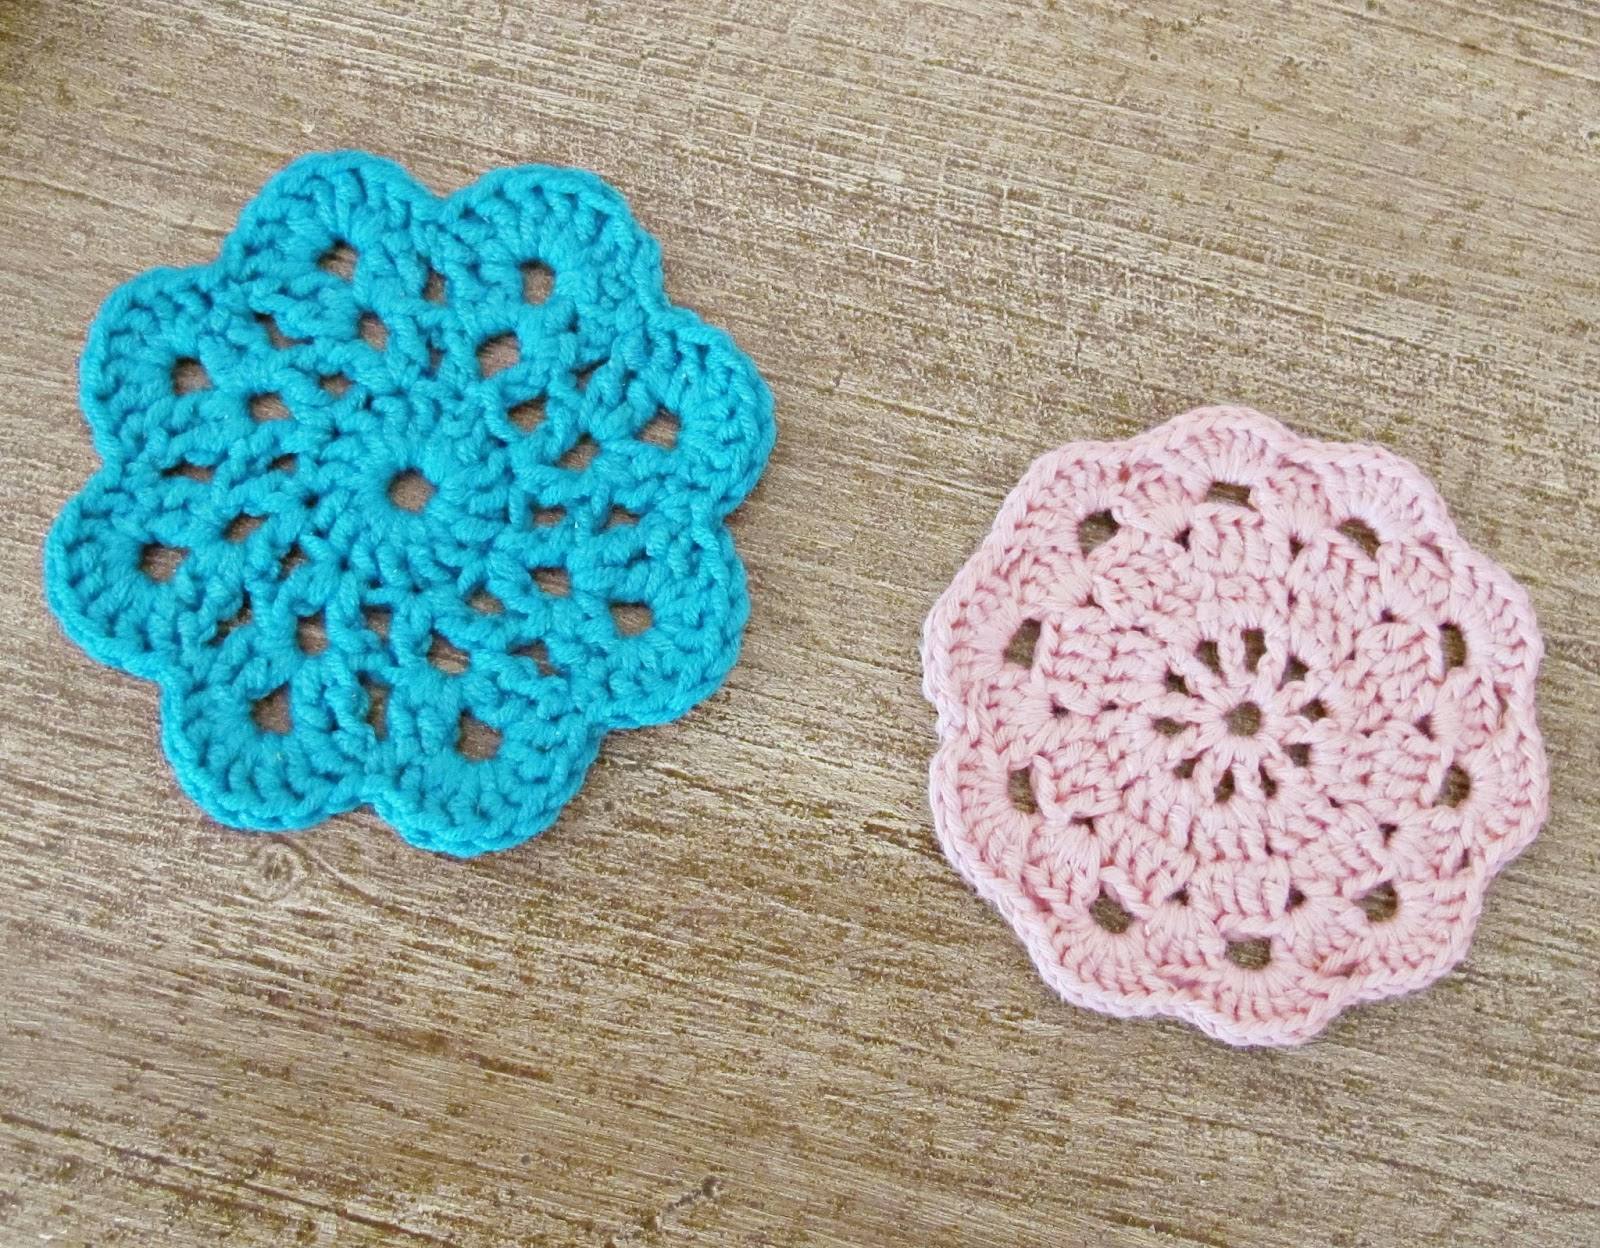 image crochet doilies coasters drinks crocheted moda vera beetle yarn pink turquoise